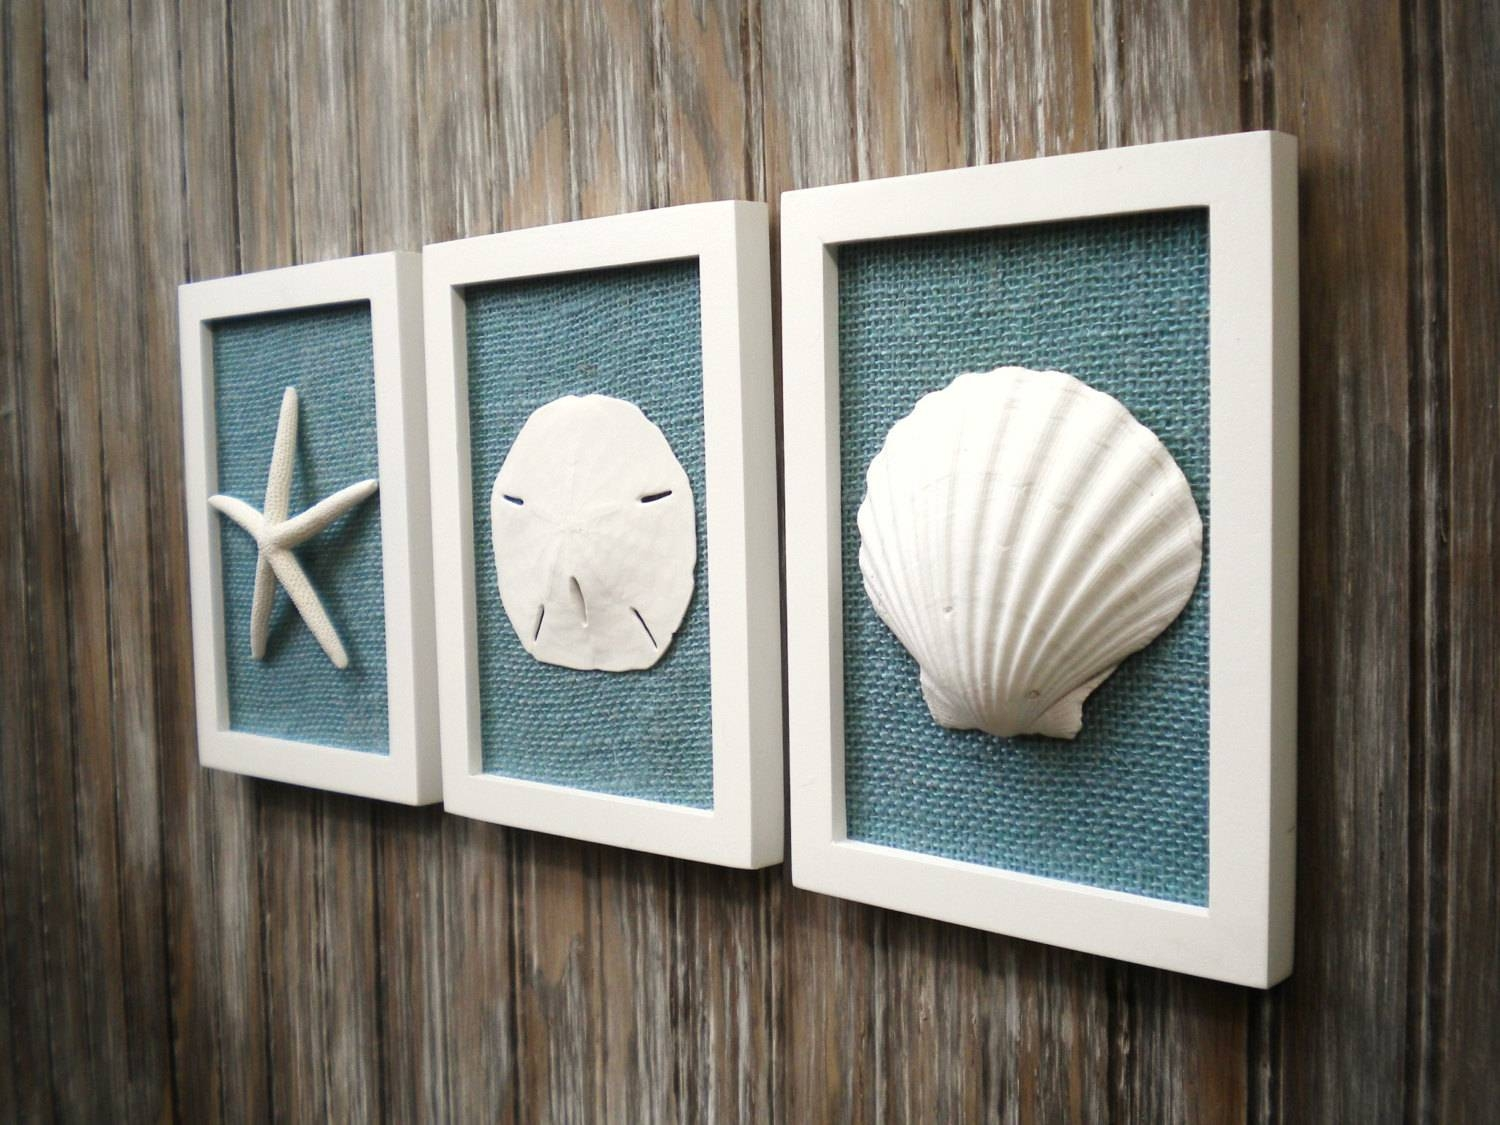 Cottage Chic Set Of Beach Decor Wall Art Nautical Decor For Current Coastal Wall Art Decor (View 2 of 20)